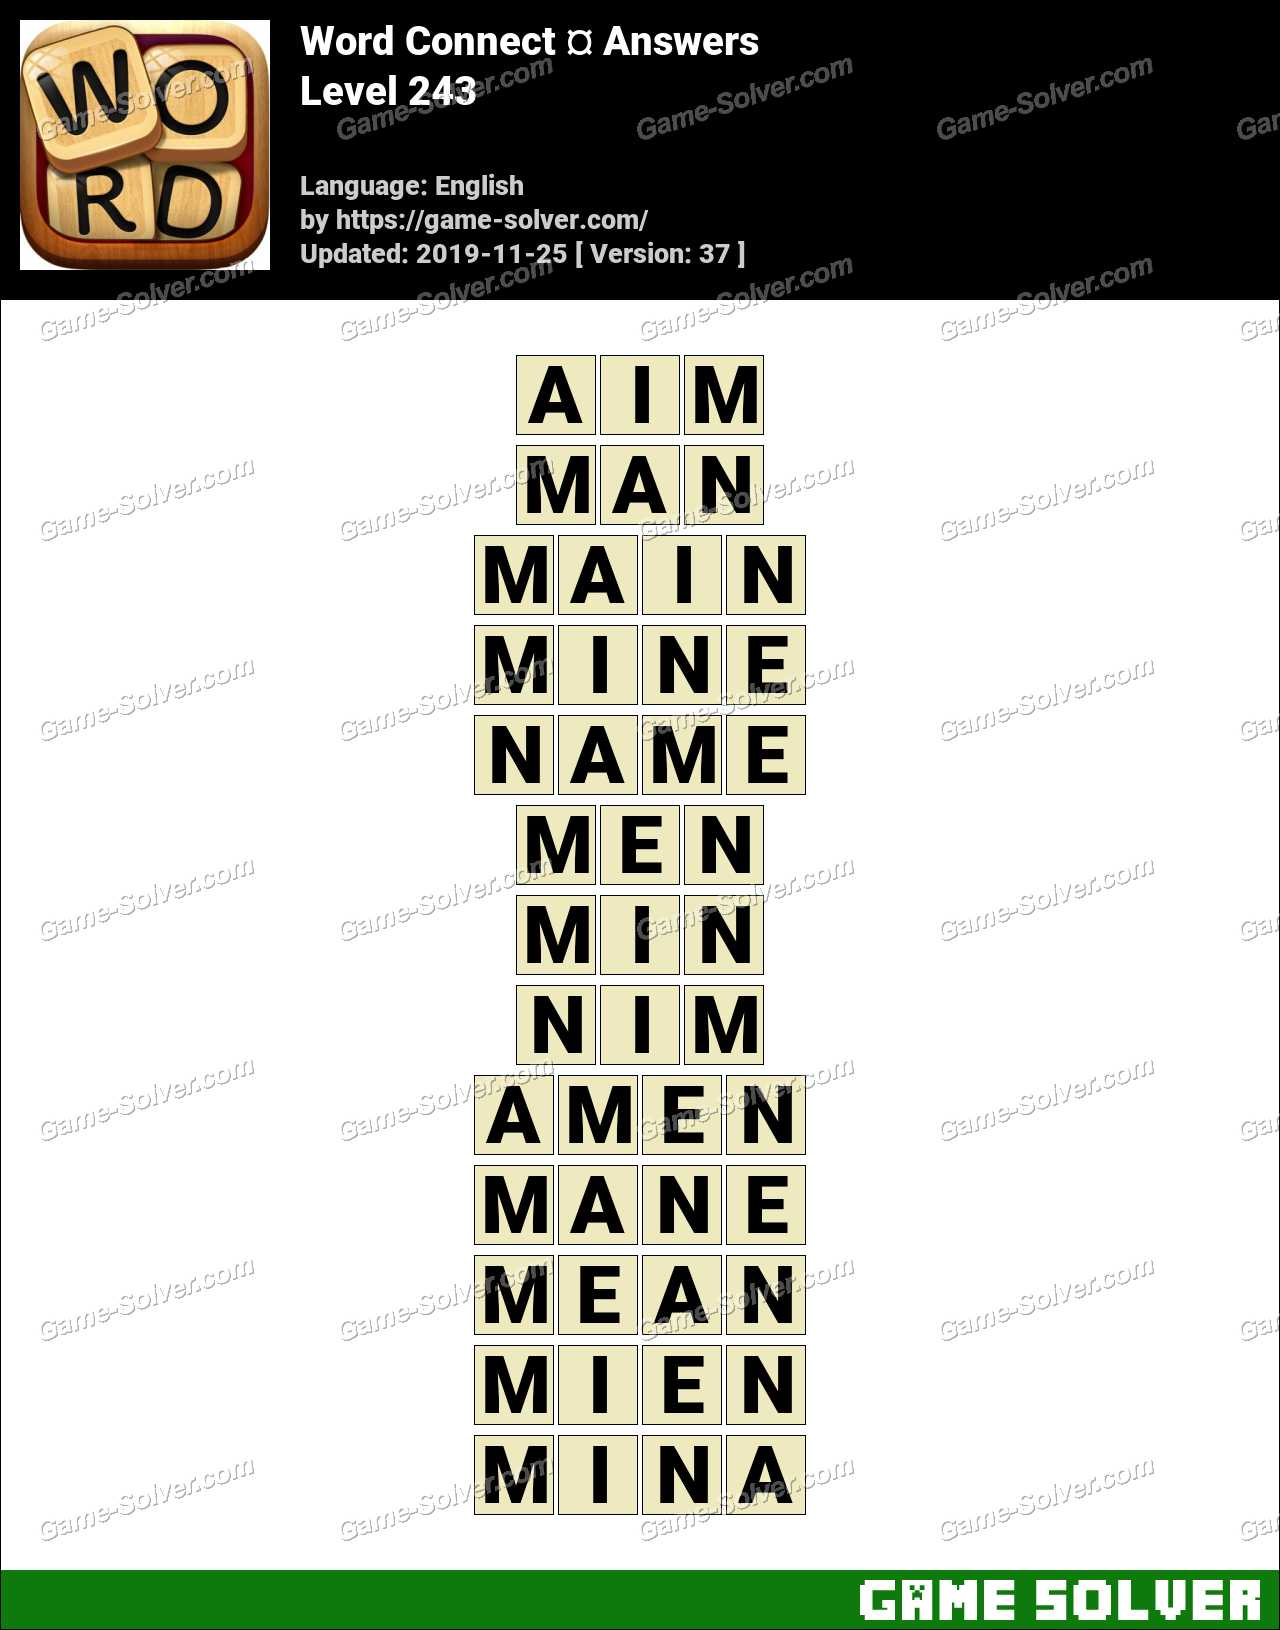 Word Connect Level 243 Answers